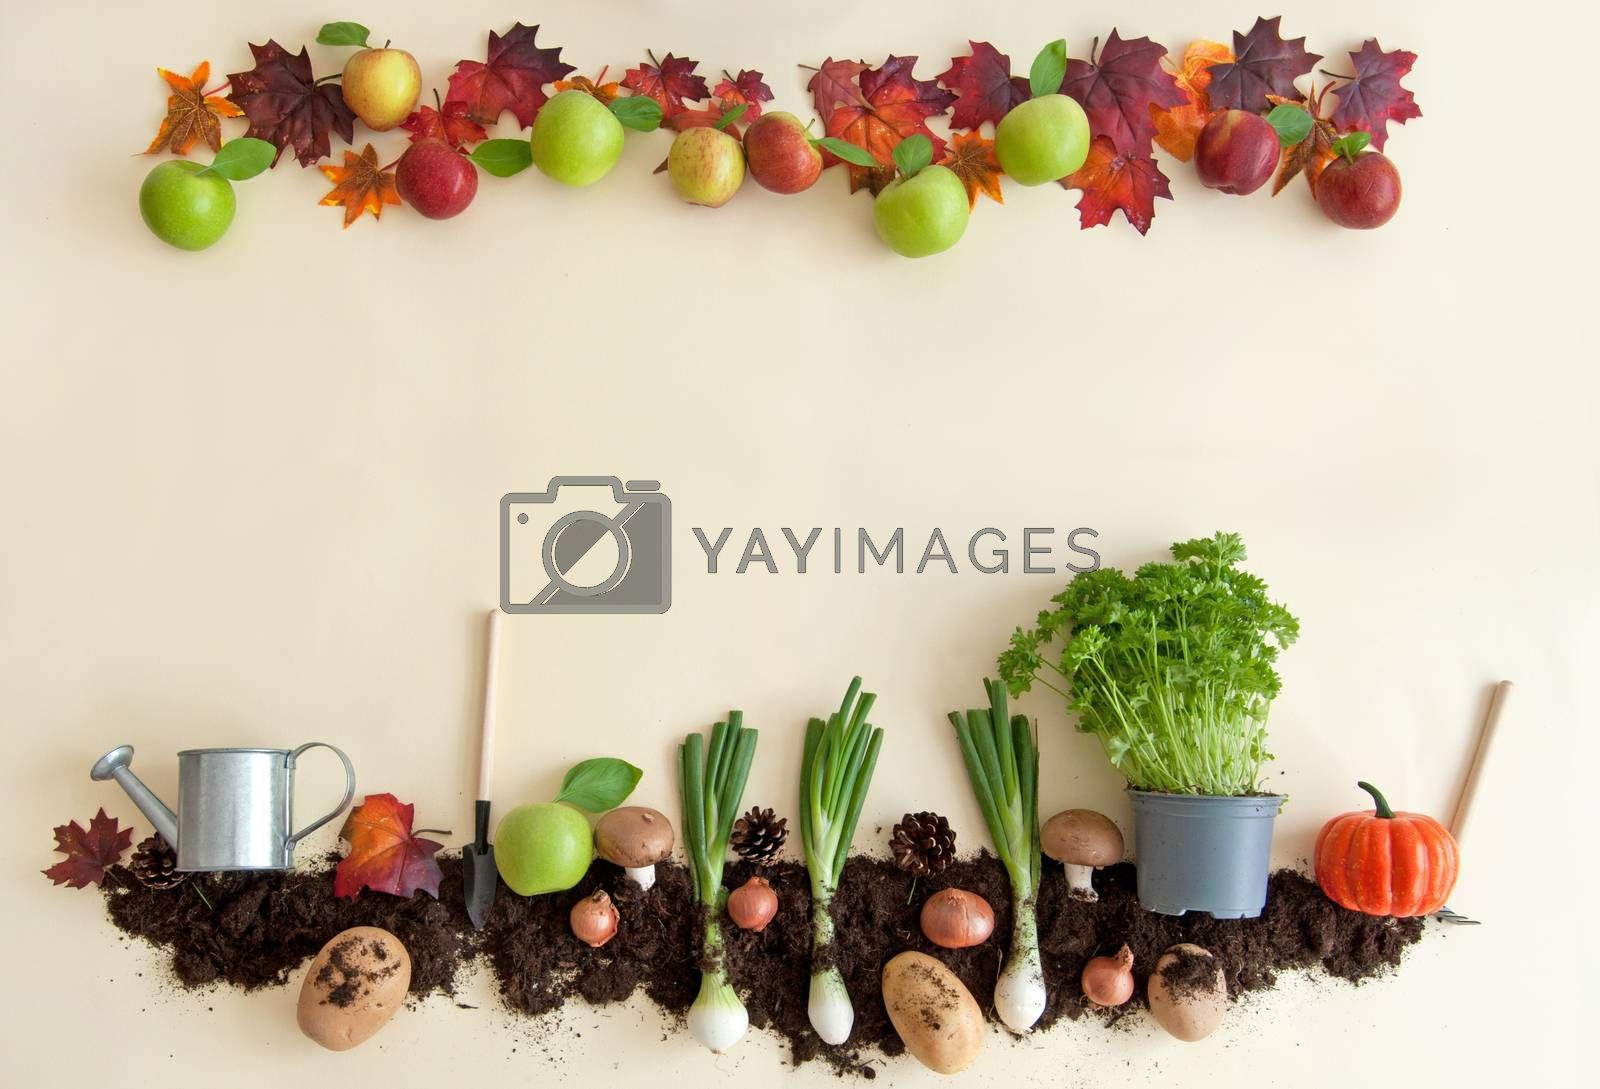 Royalty free image of Autumn fruits and vegetables  by unikpix